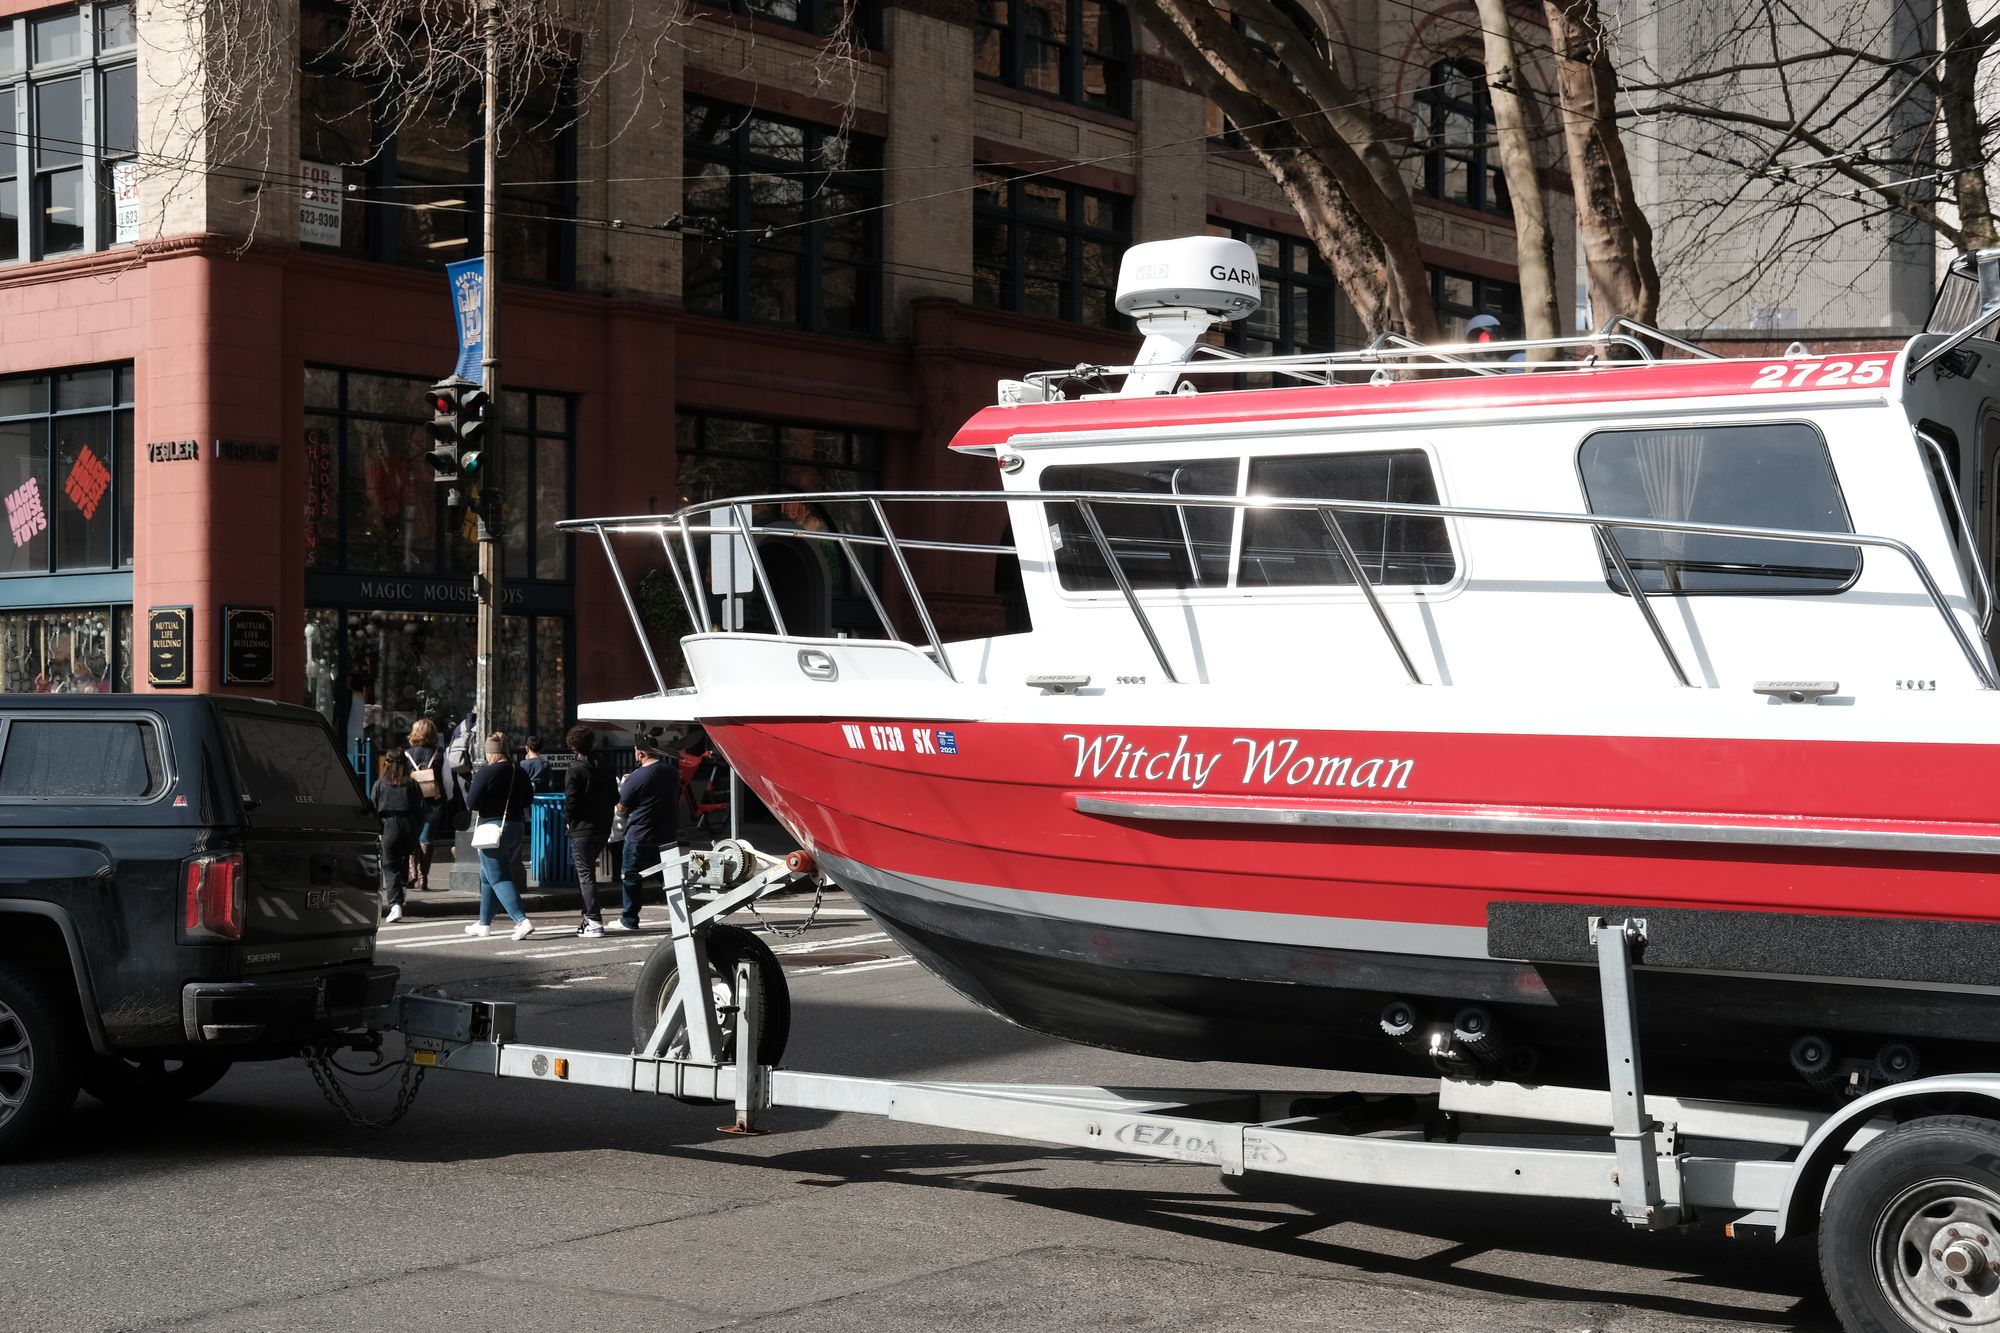 Boat Pioneer Square Seattle March 2021